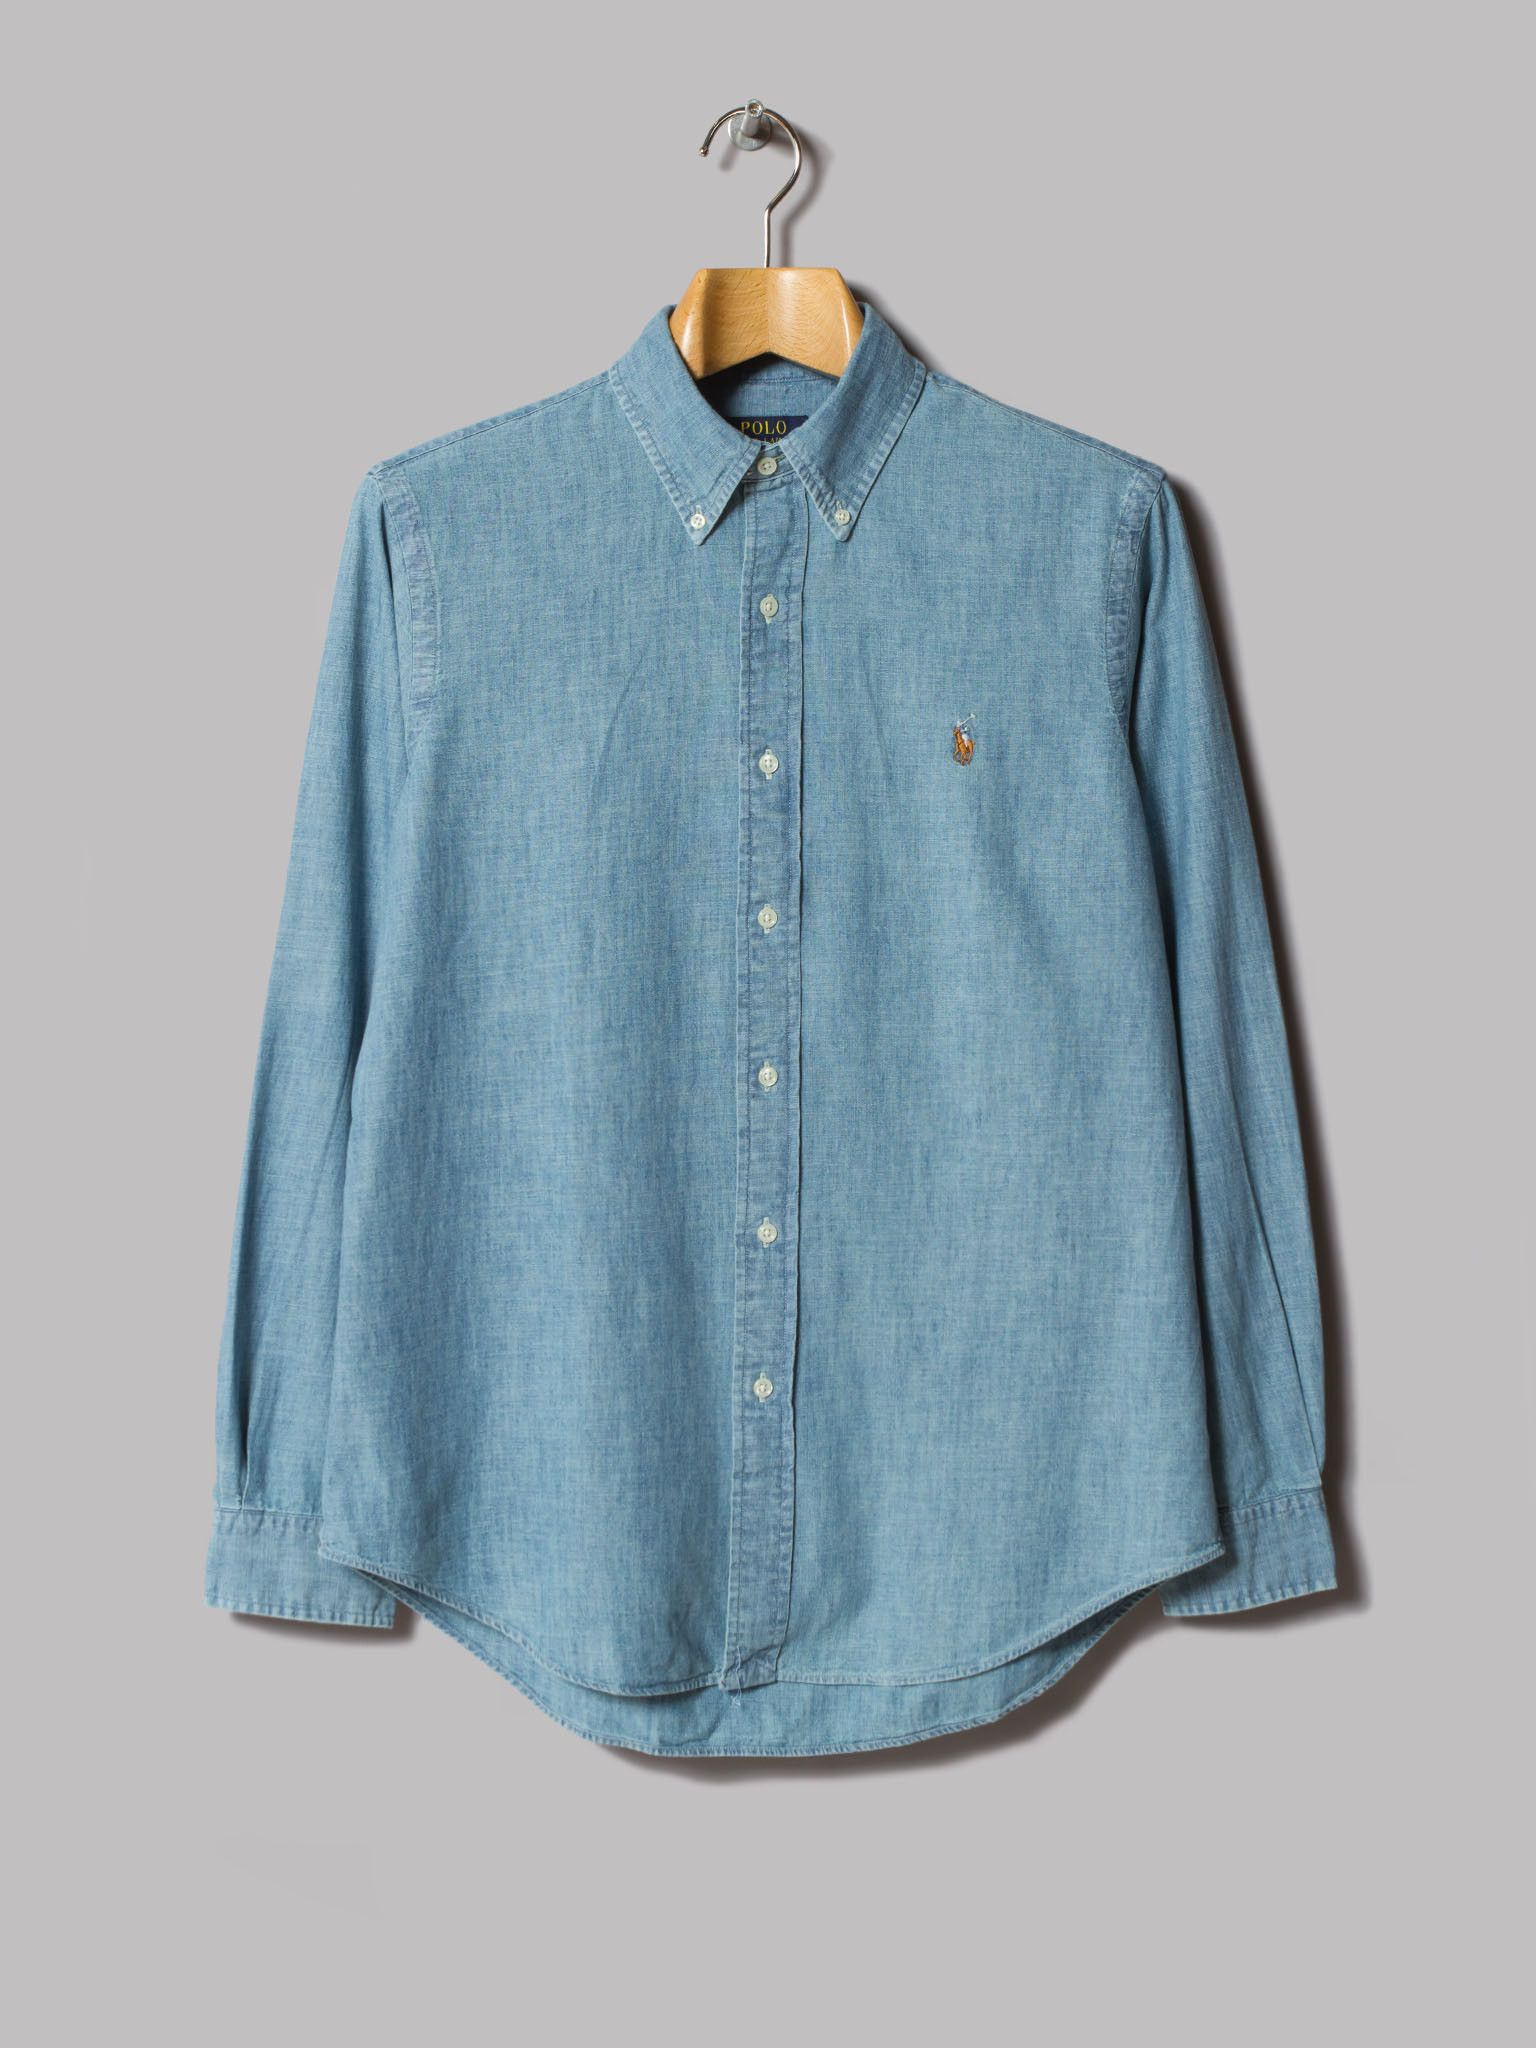 a81dc7fdec Polo Ralph Lauren Custom Fit Denim Shirt (Medium Wash)